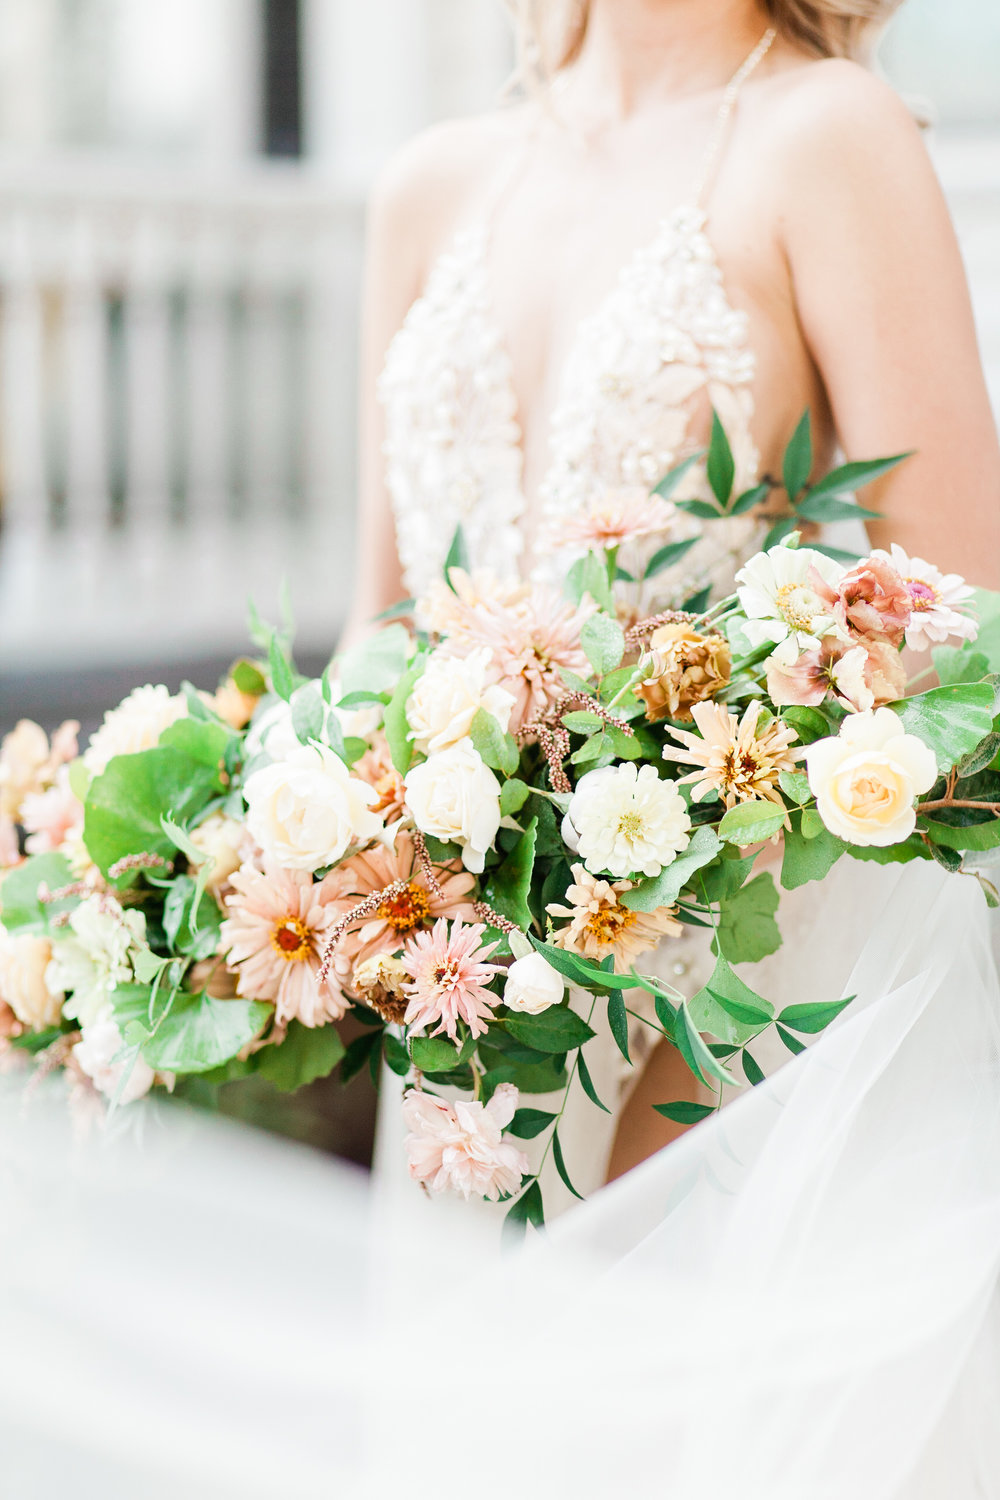 Splurge on The bouquet - It's in every photo. Real flowers may cost more but they smell amazing. There's also nothing like them!